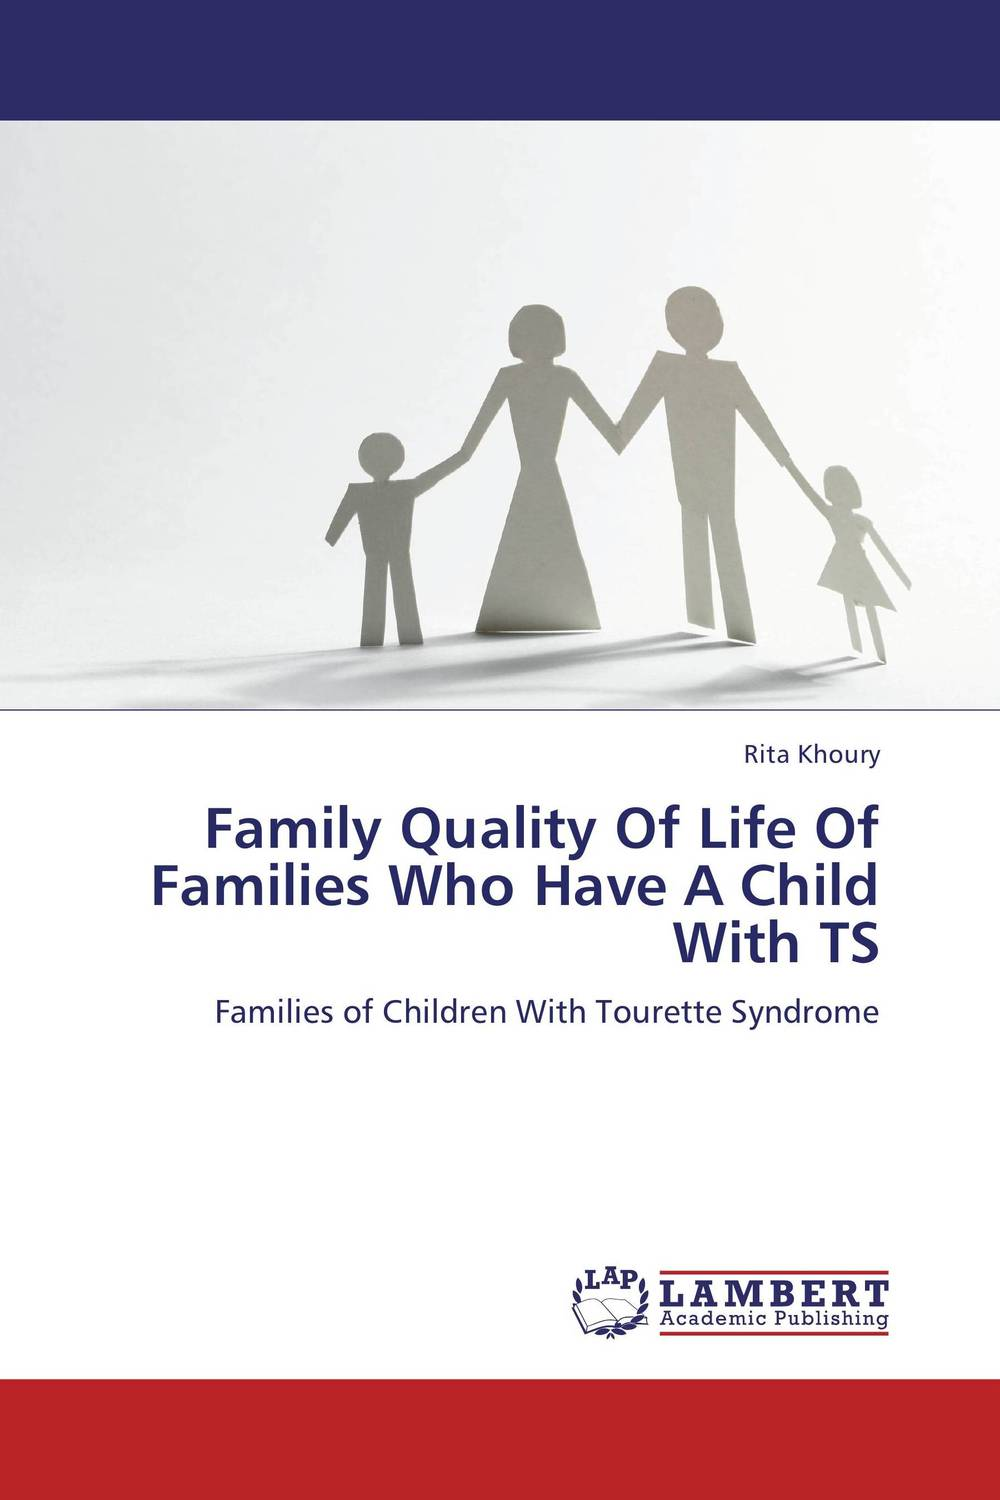 Family Quality Of Life Of Families Who Have A Child With TS epilepsy in children psychological concerns